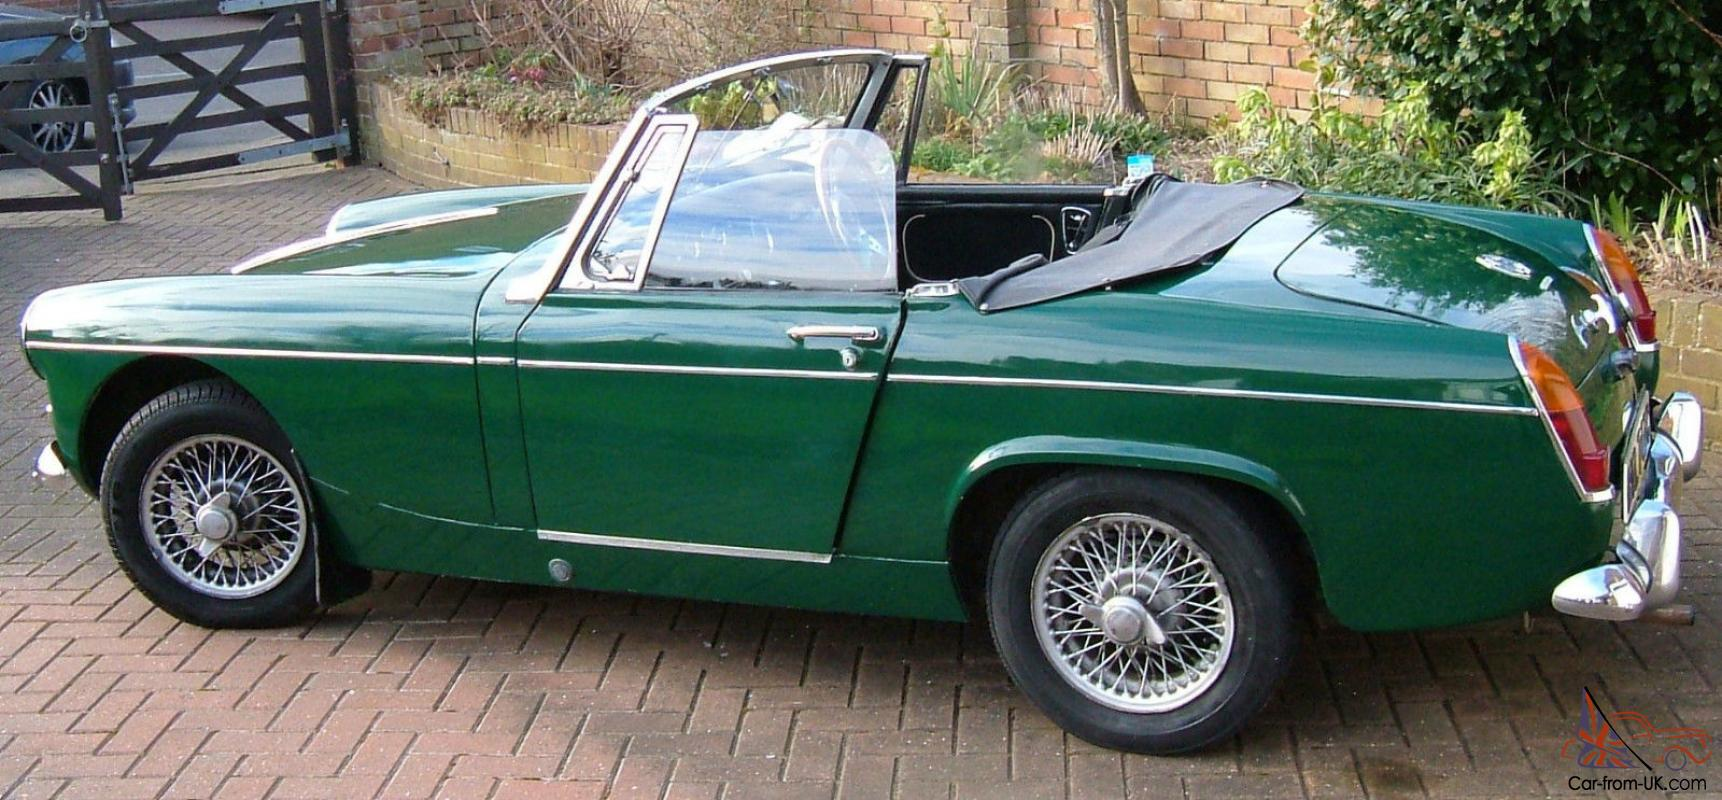 Mg Midget 1965 Mk11 1098cc British Racing Green